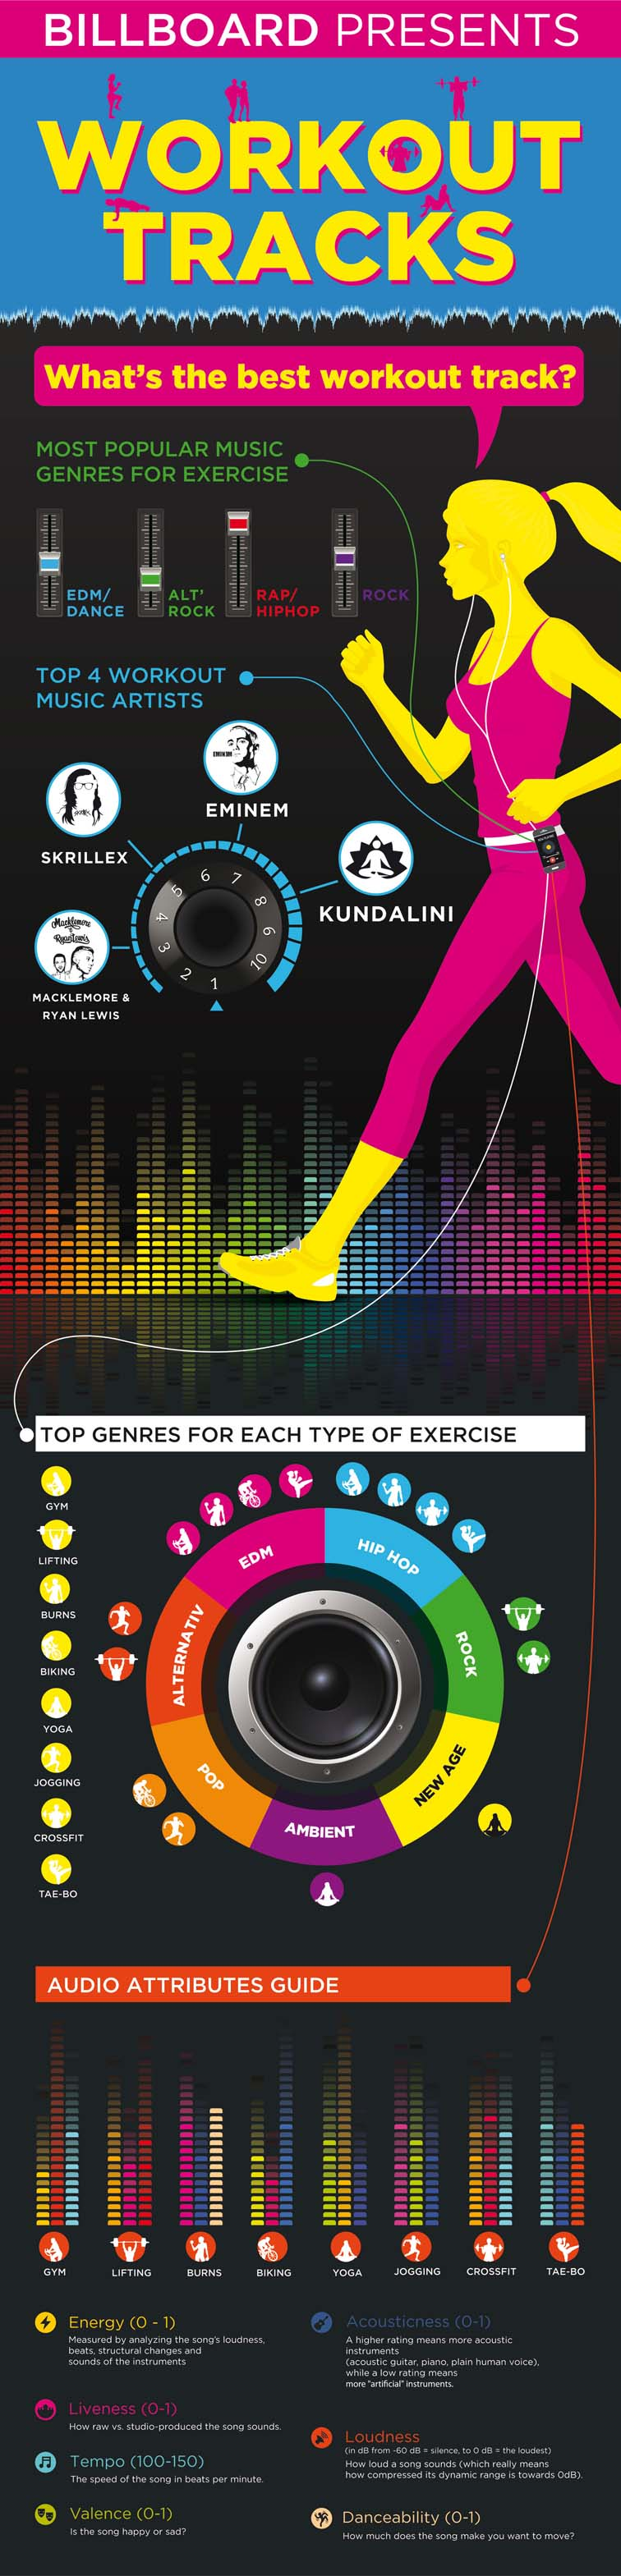 Exercise Playlist Infographic 5667